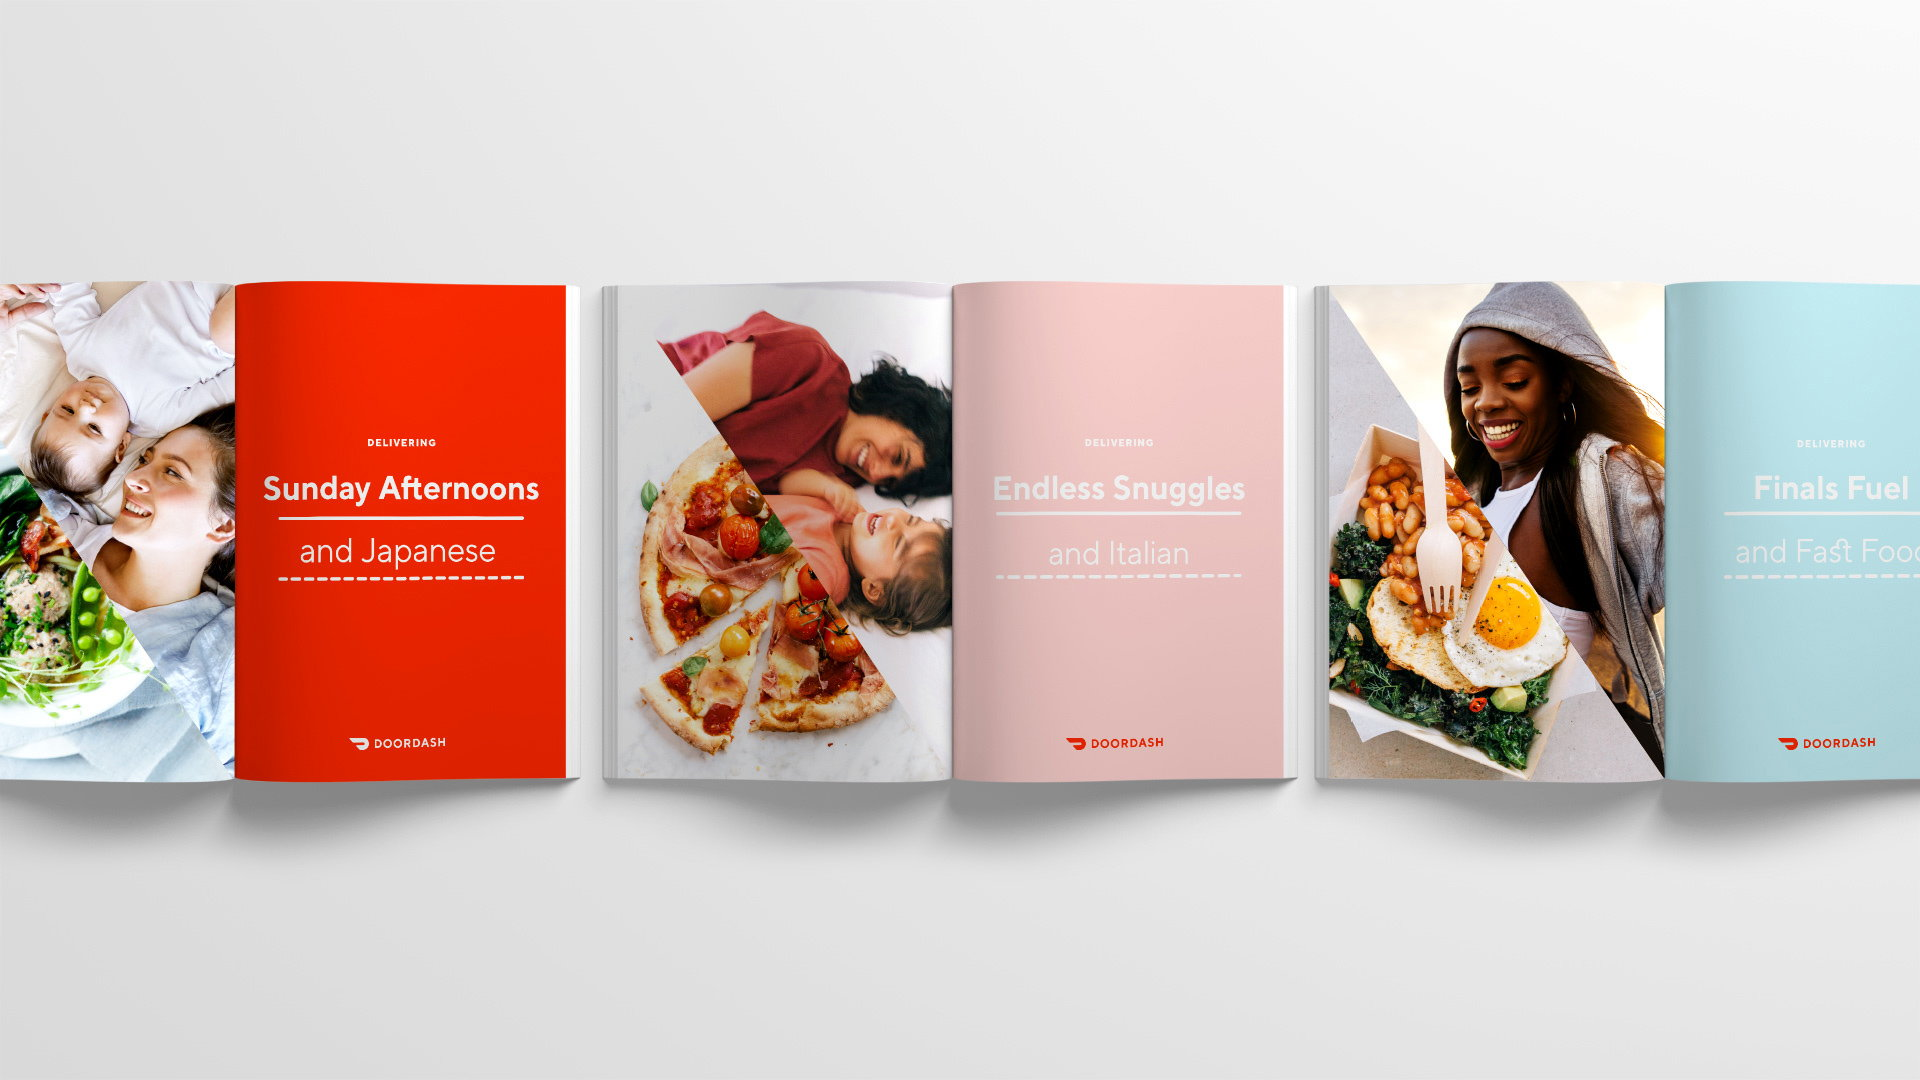 Character Designs New Branding for DoorDash